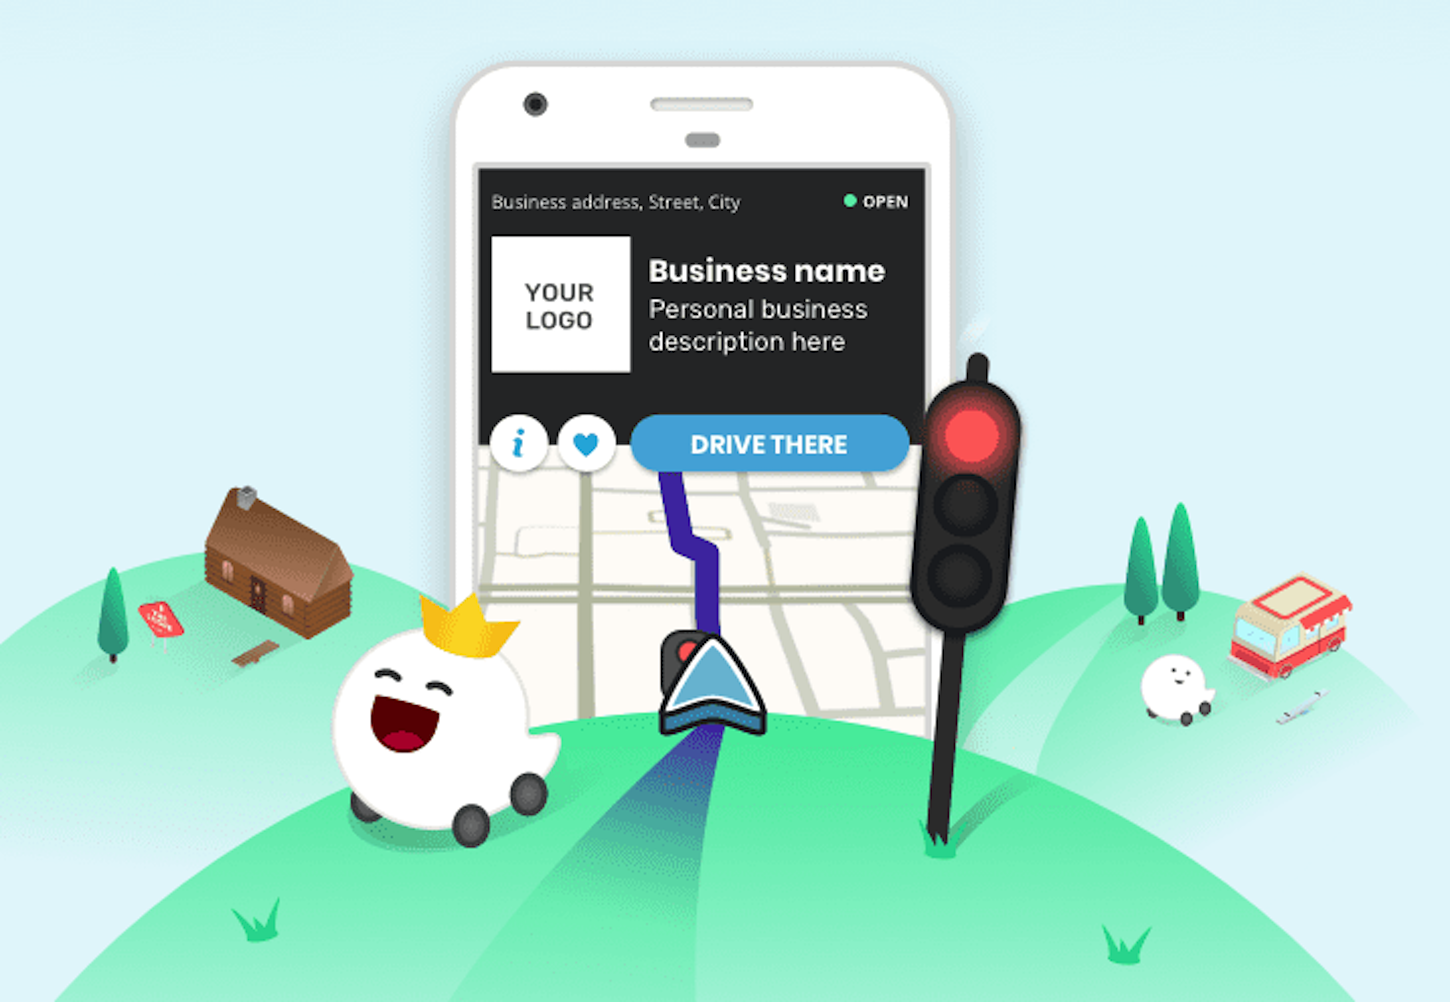 Ecommerce trends: mobile display of Waze, Googles navigation app